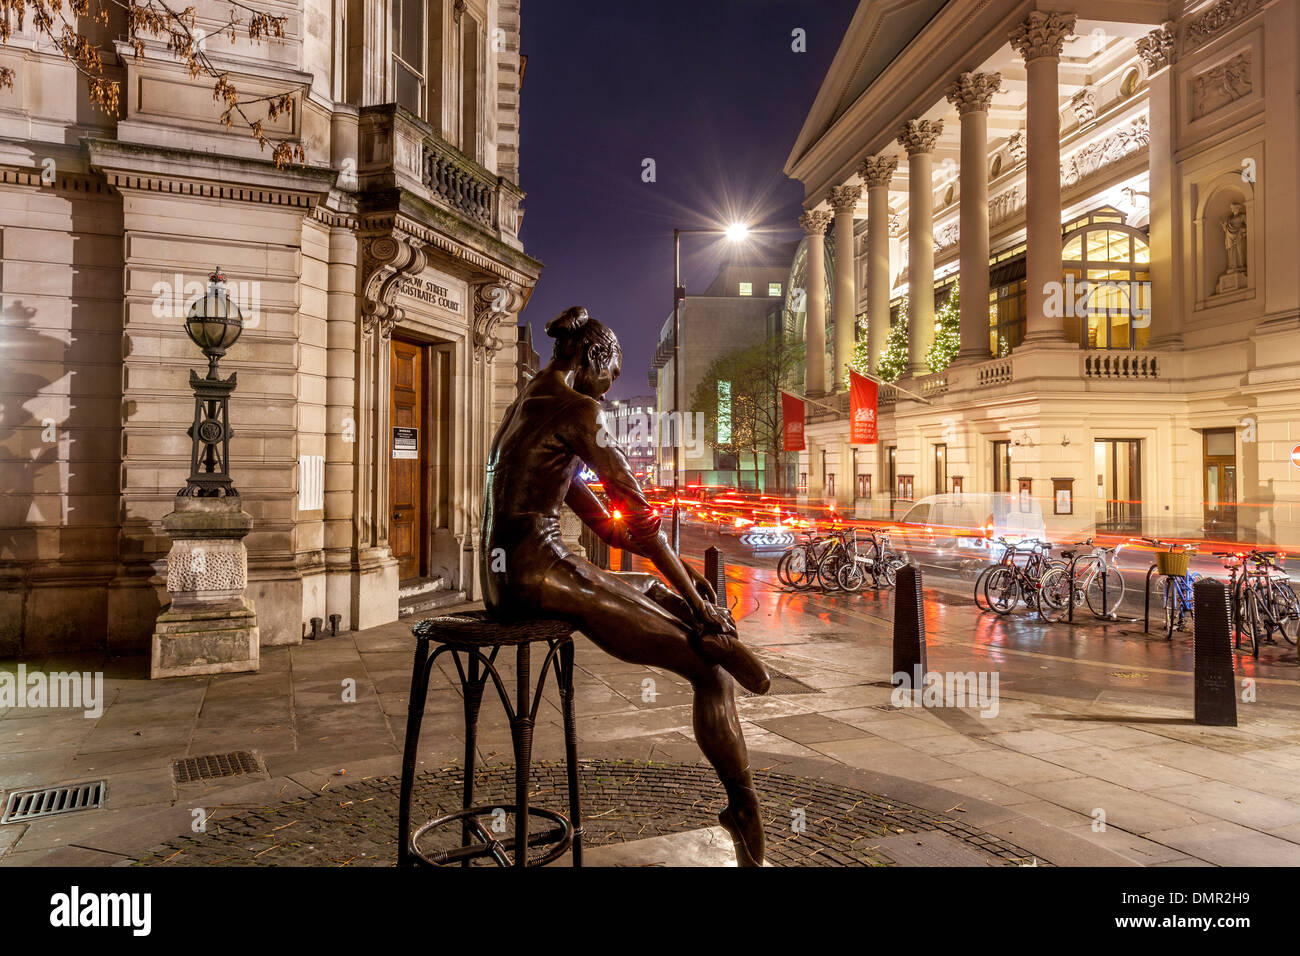 Fascinating The Royal Opera House  Young Dancer Statue Covent Garden London  With Outstanding The Royal Opera House  Young Dancer Statue Covent Garden London England With Delightful Rustic Garden Supplies Also Pga National Champion Palm Beach Gardens Fl In Addition Secret Tea Garden And X Garden Shed As Well As Mpb Garden Buildings Ltd Additionally Council Gardening Jobs From Alamycom With   Outstanding The Royal Opera House  Young Dancer Statue Covent Garden London  With Delightful The Royal Opera House  Young Dancer Statue Covent Garden London England And Fascinating Rustic Garden Supplies Also Pga National Champion Palm Beach Gardens Fl In Addition Secret Tea Garden From Alamycom